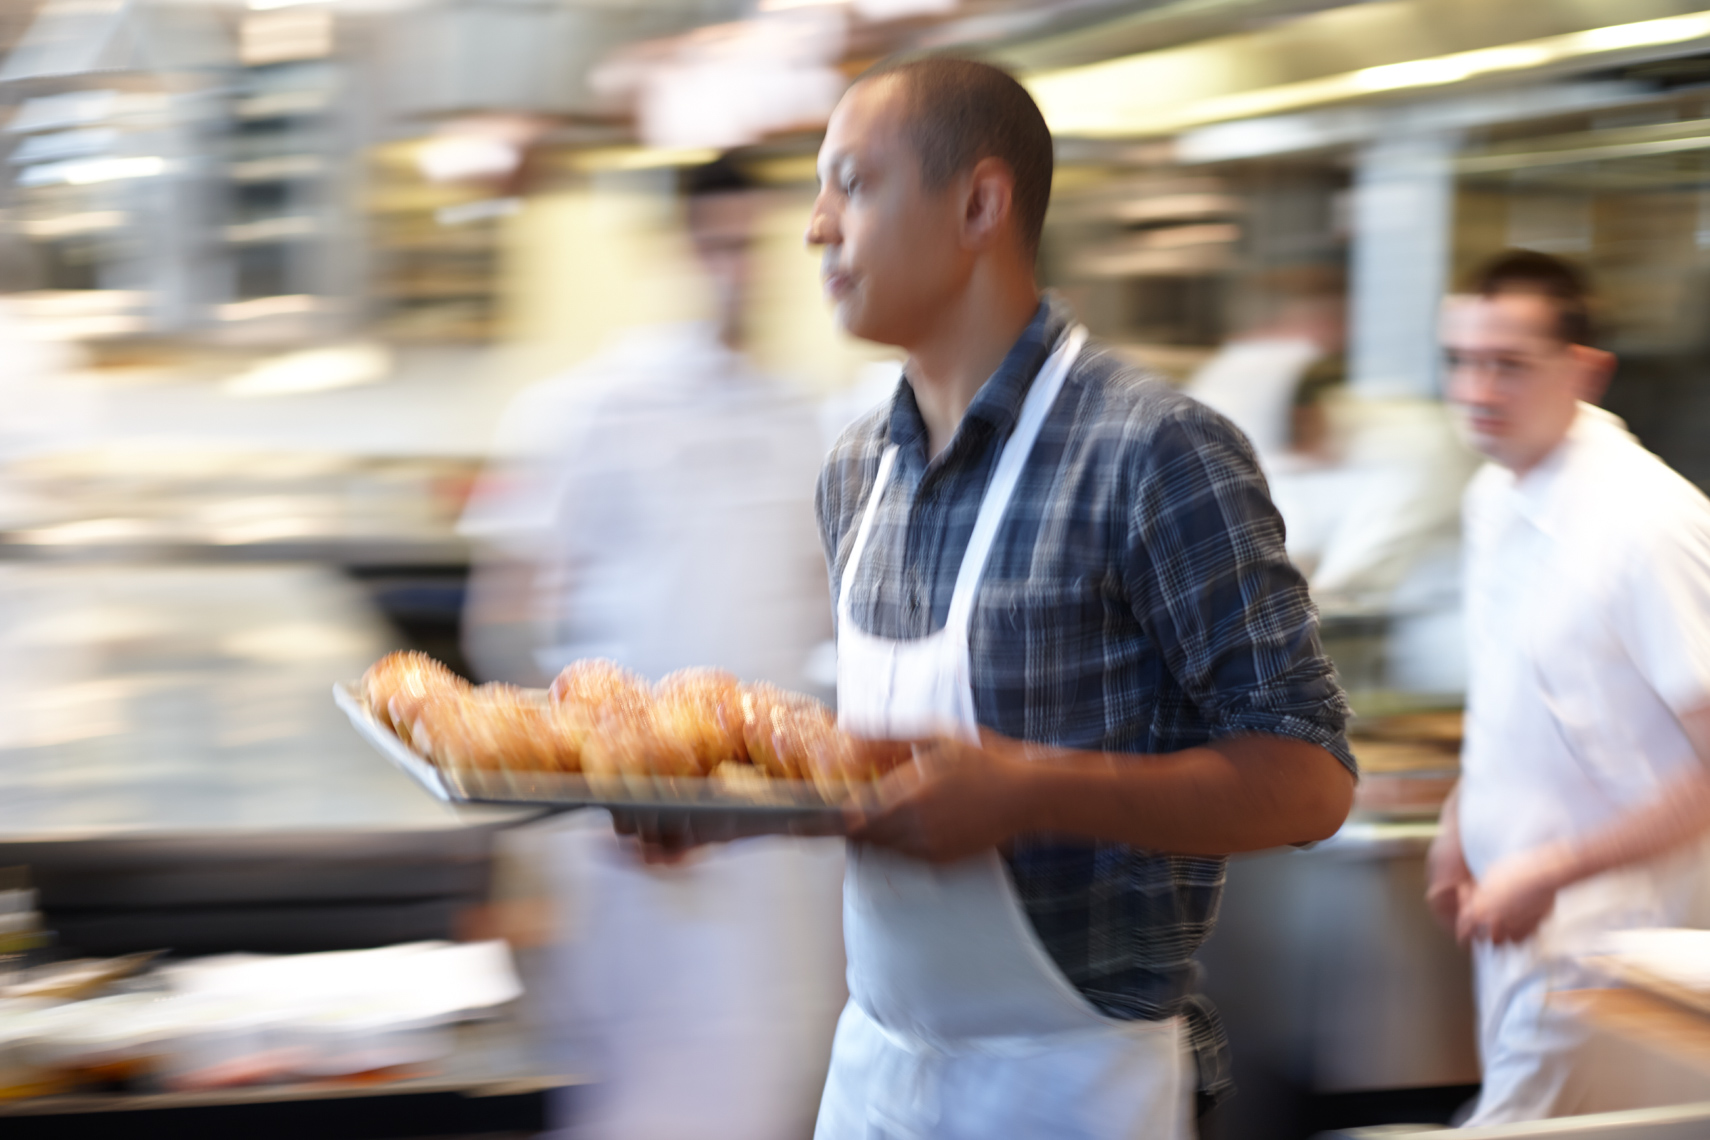 Waiter in white apron rushing through kitchen with a tray of food San Francisco lifestyle photographer